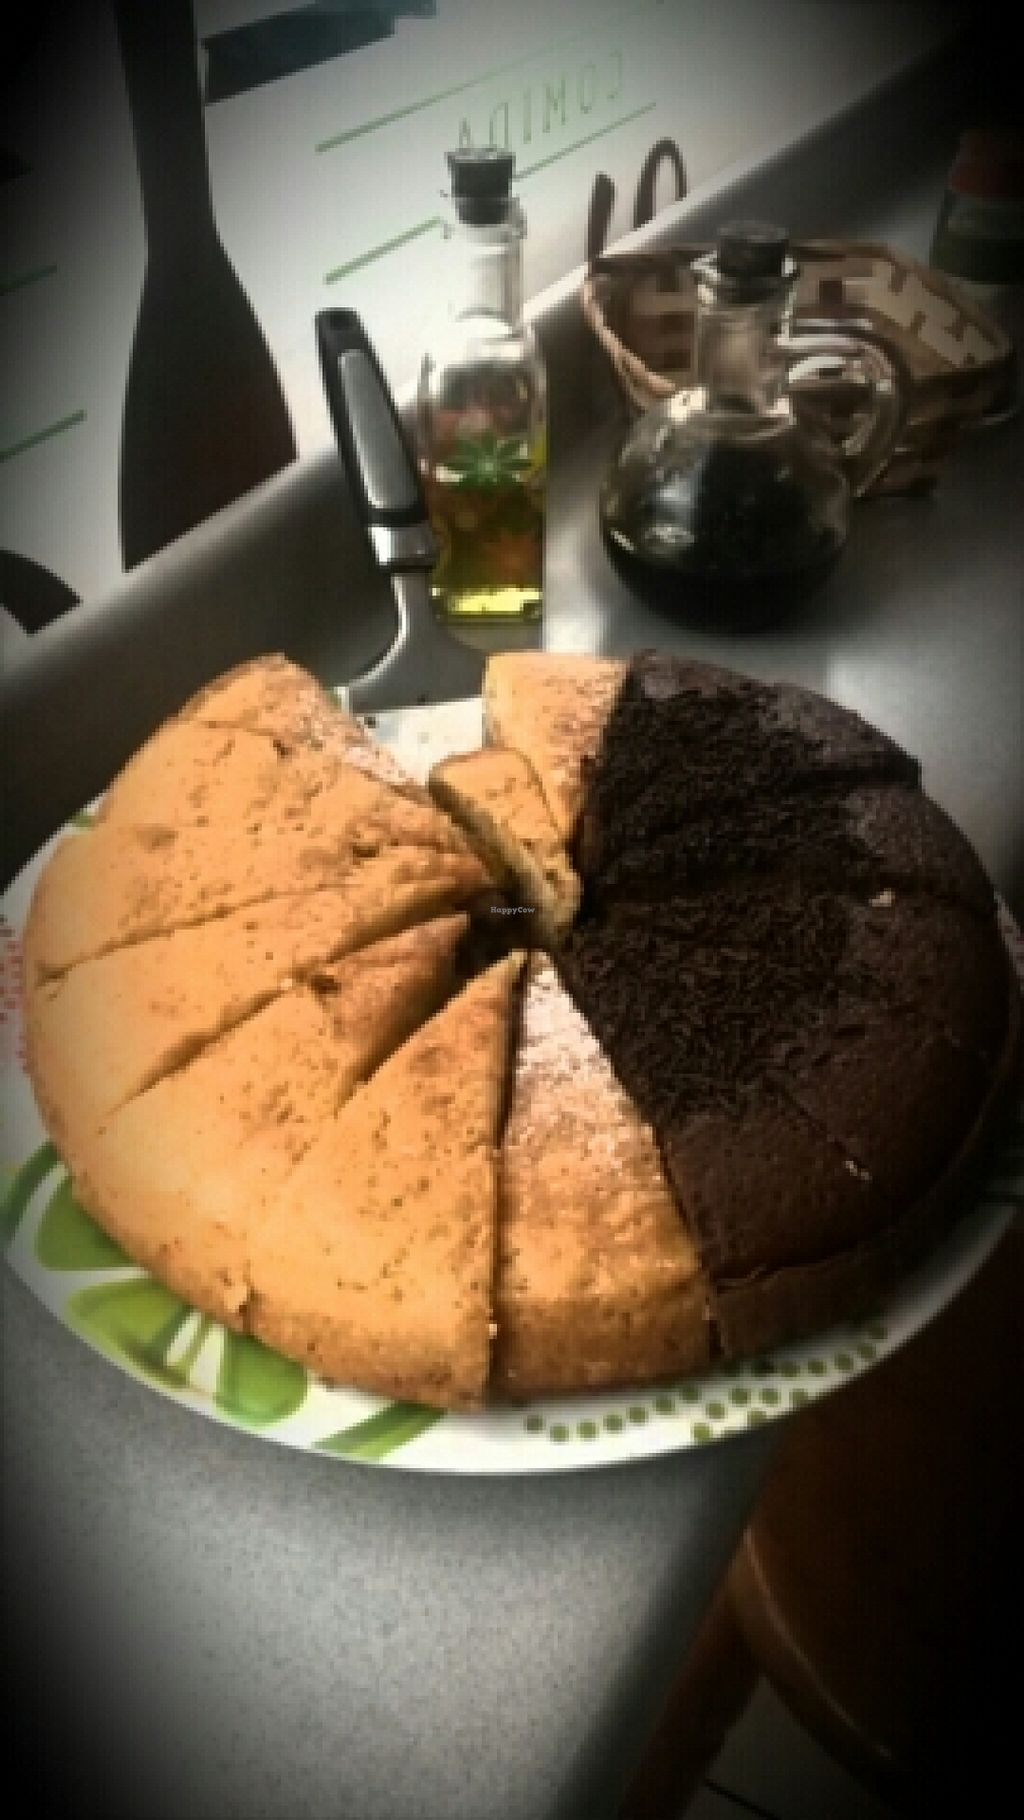 """Photo of Vege Chef  by <a href=""""/members/profile/sebadvc"""">sebadvc</a> <br/>queque vegano de zanahoria y chocolate <br/> May 25, 2016  - <a href='/contact/abuse/image/25886/150806'>Report</a>"""